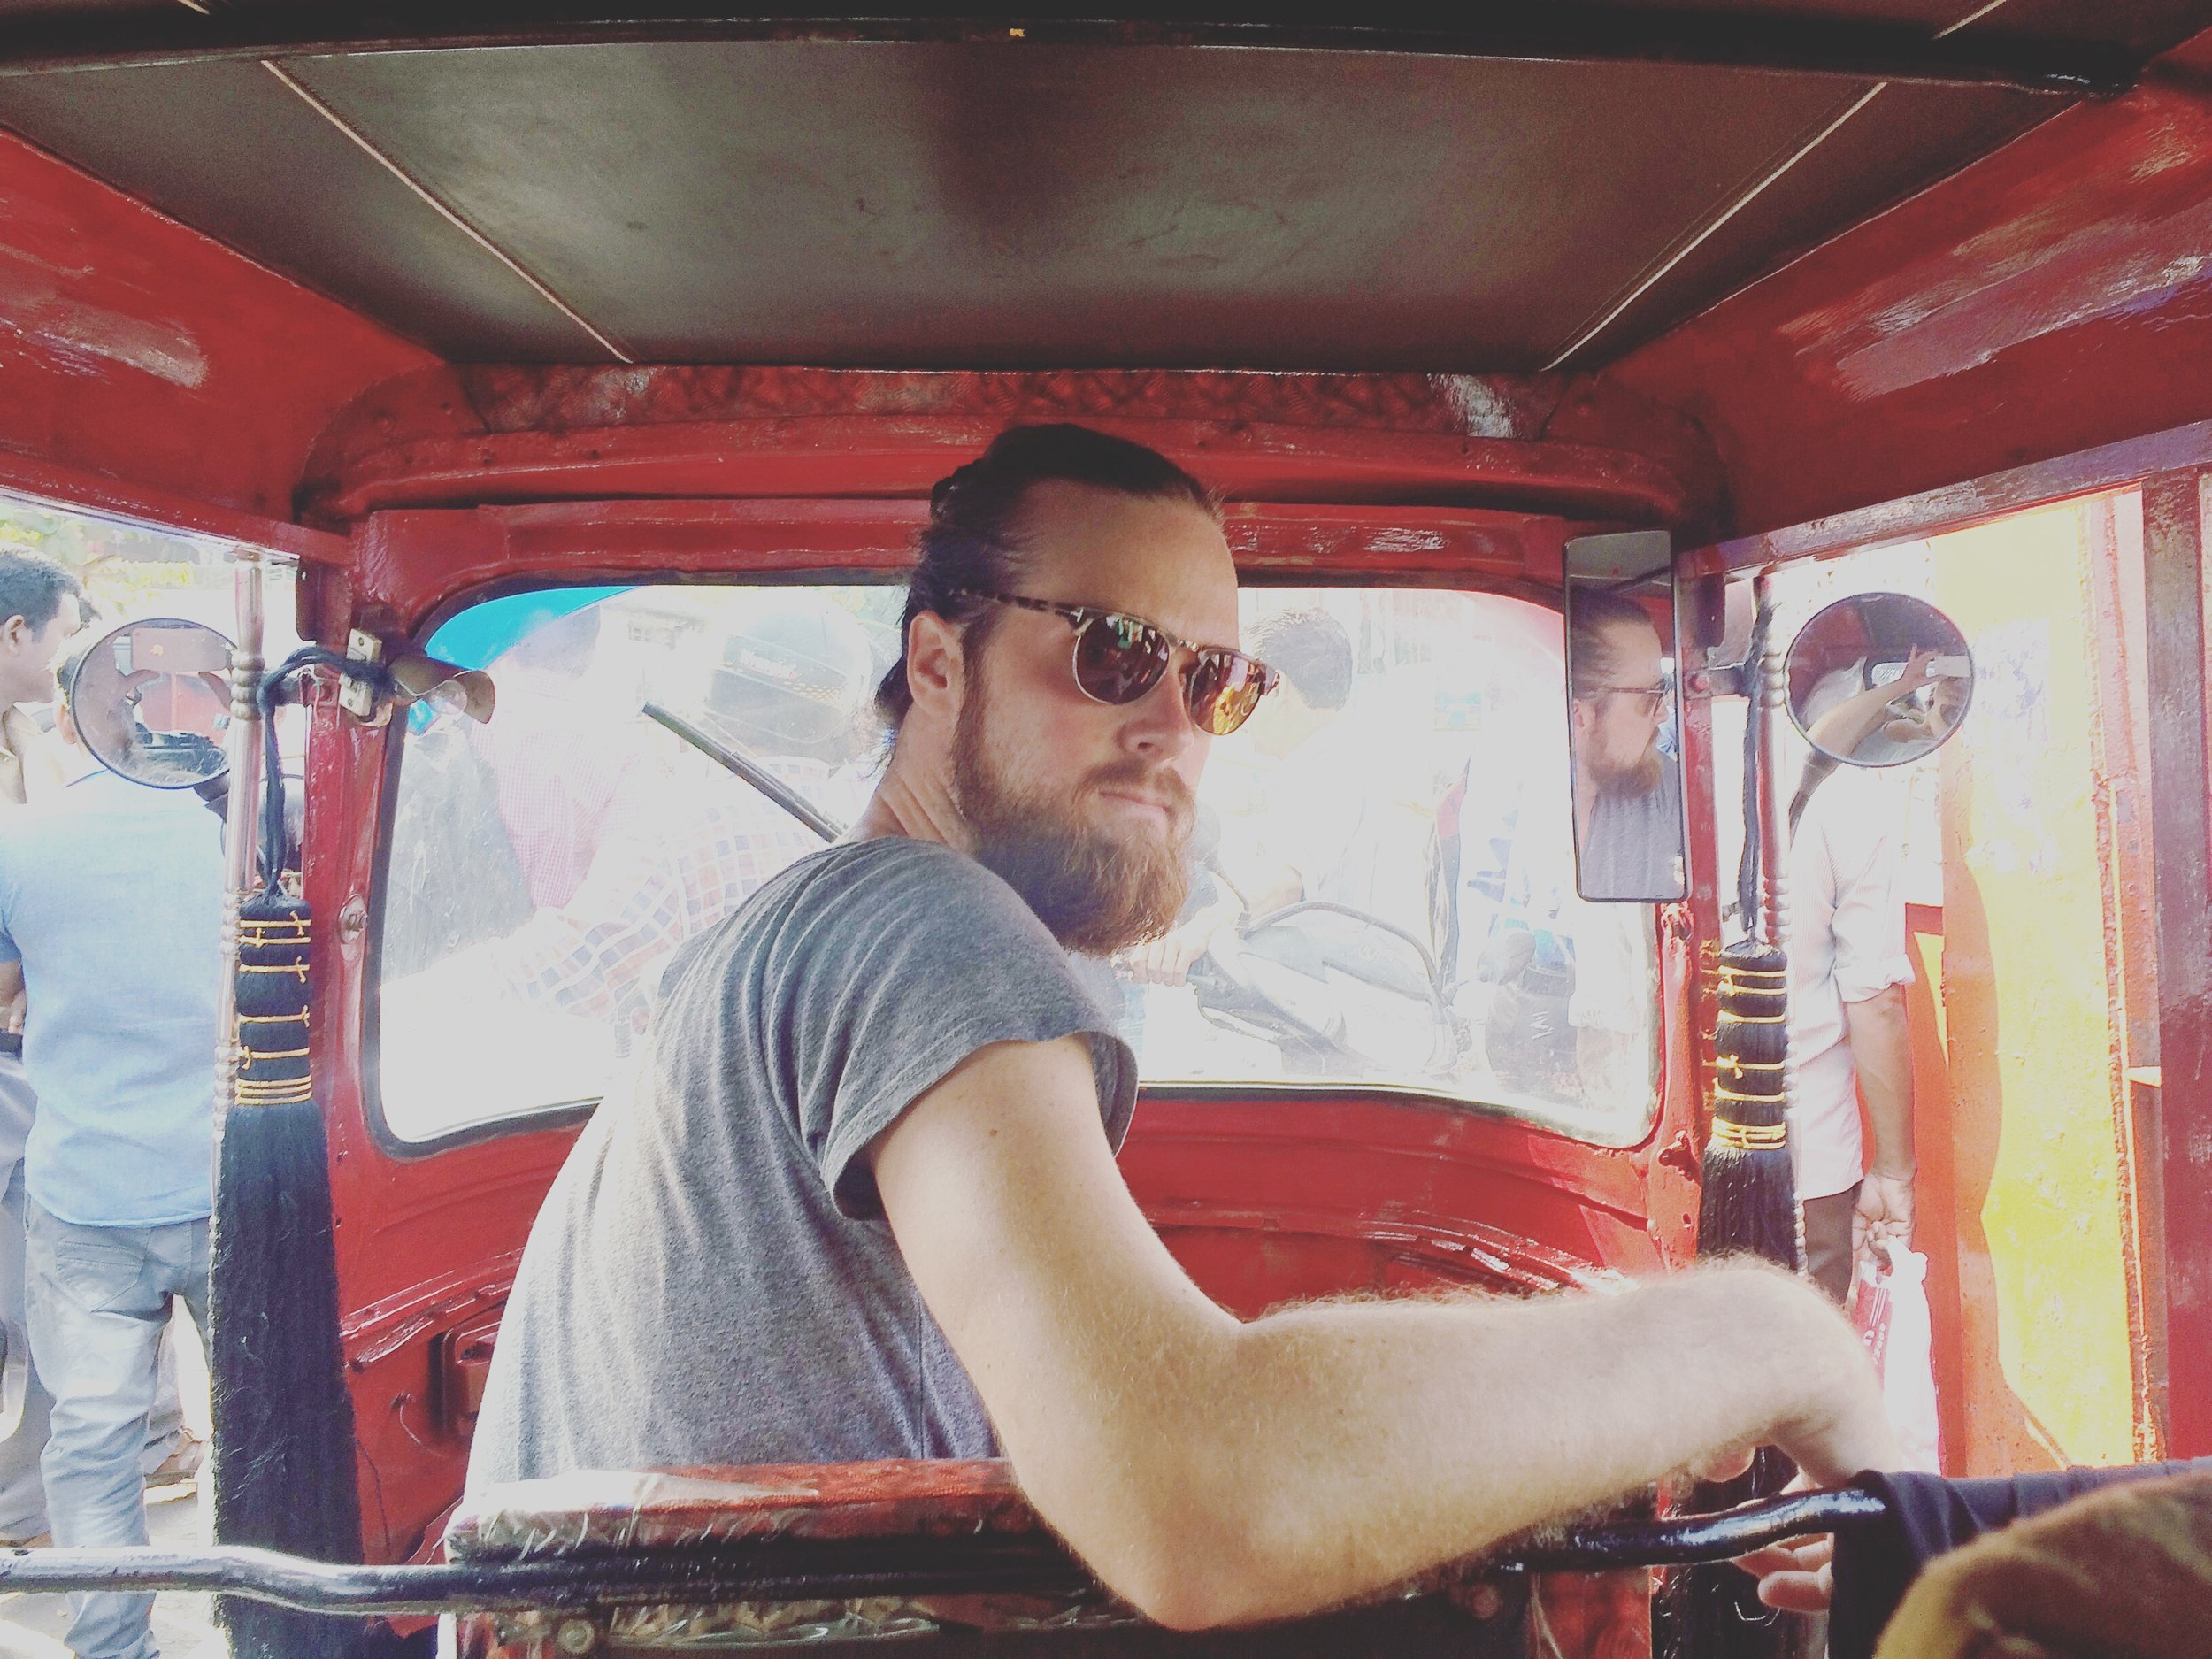 Nate in our rickshaw on a ferry